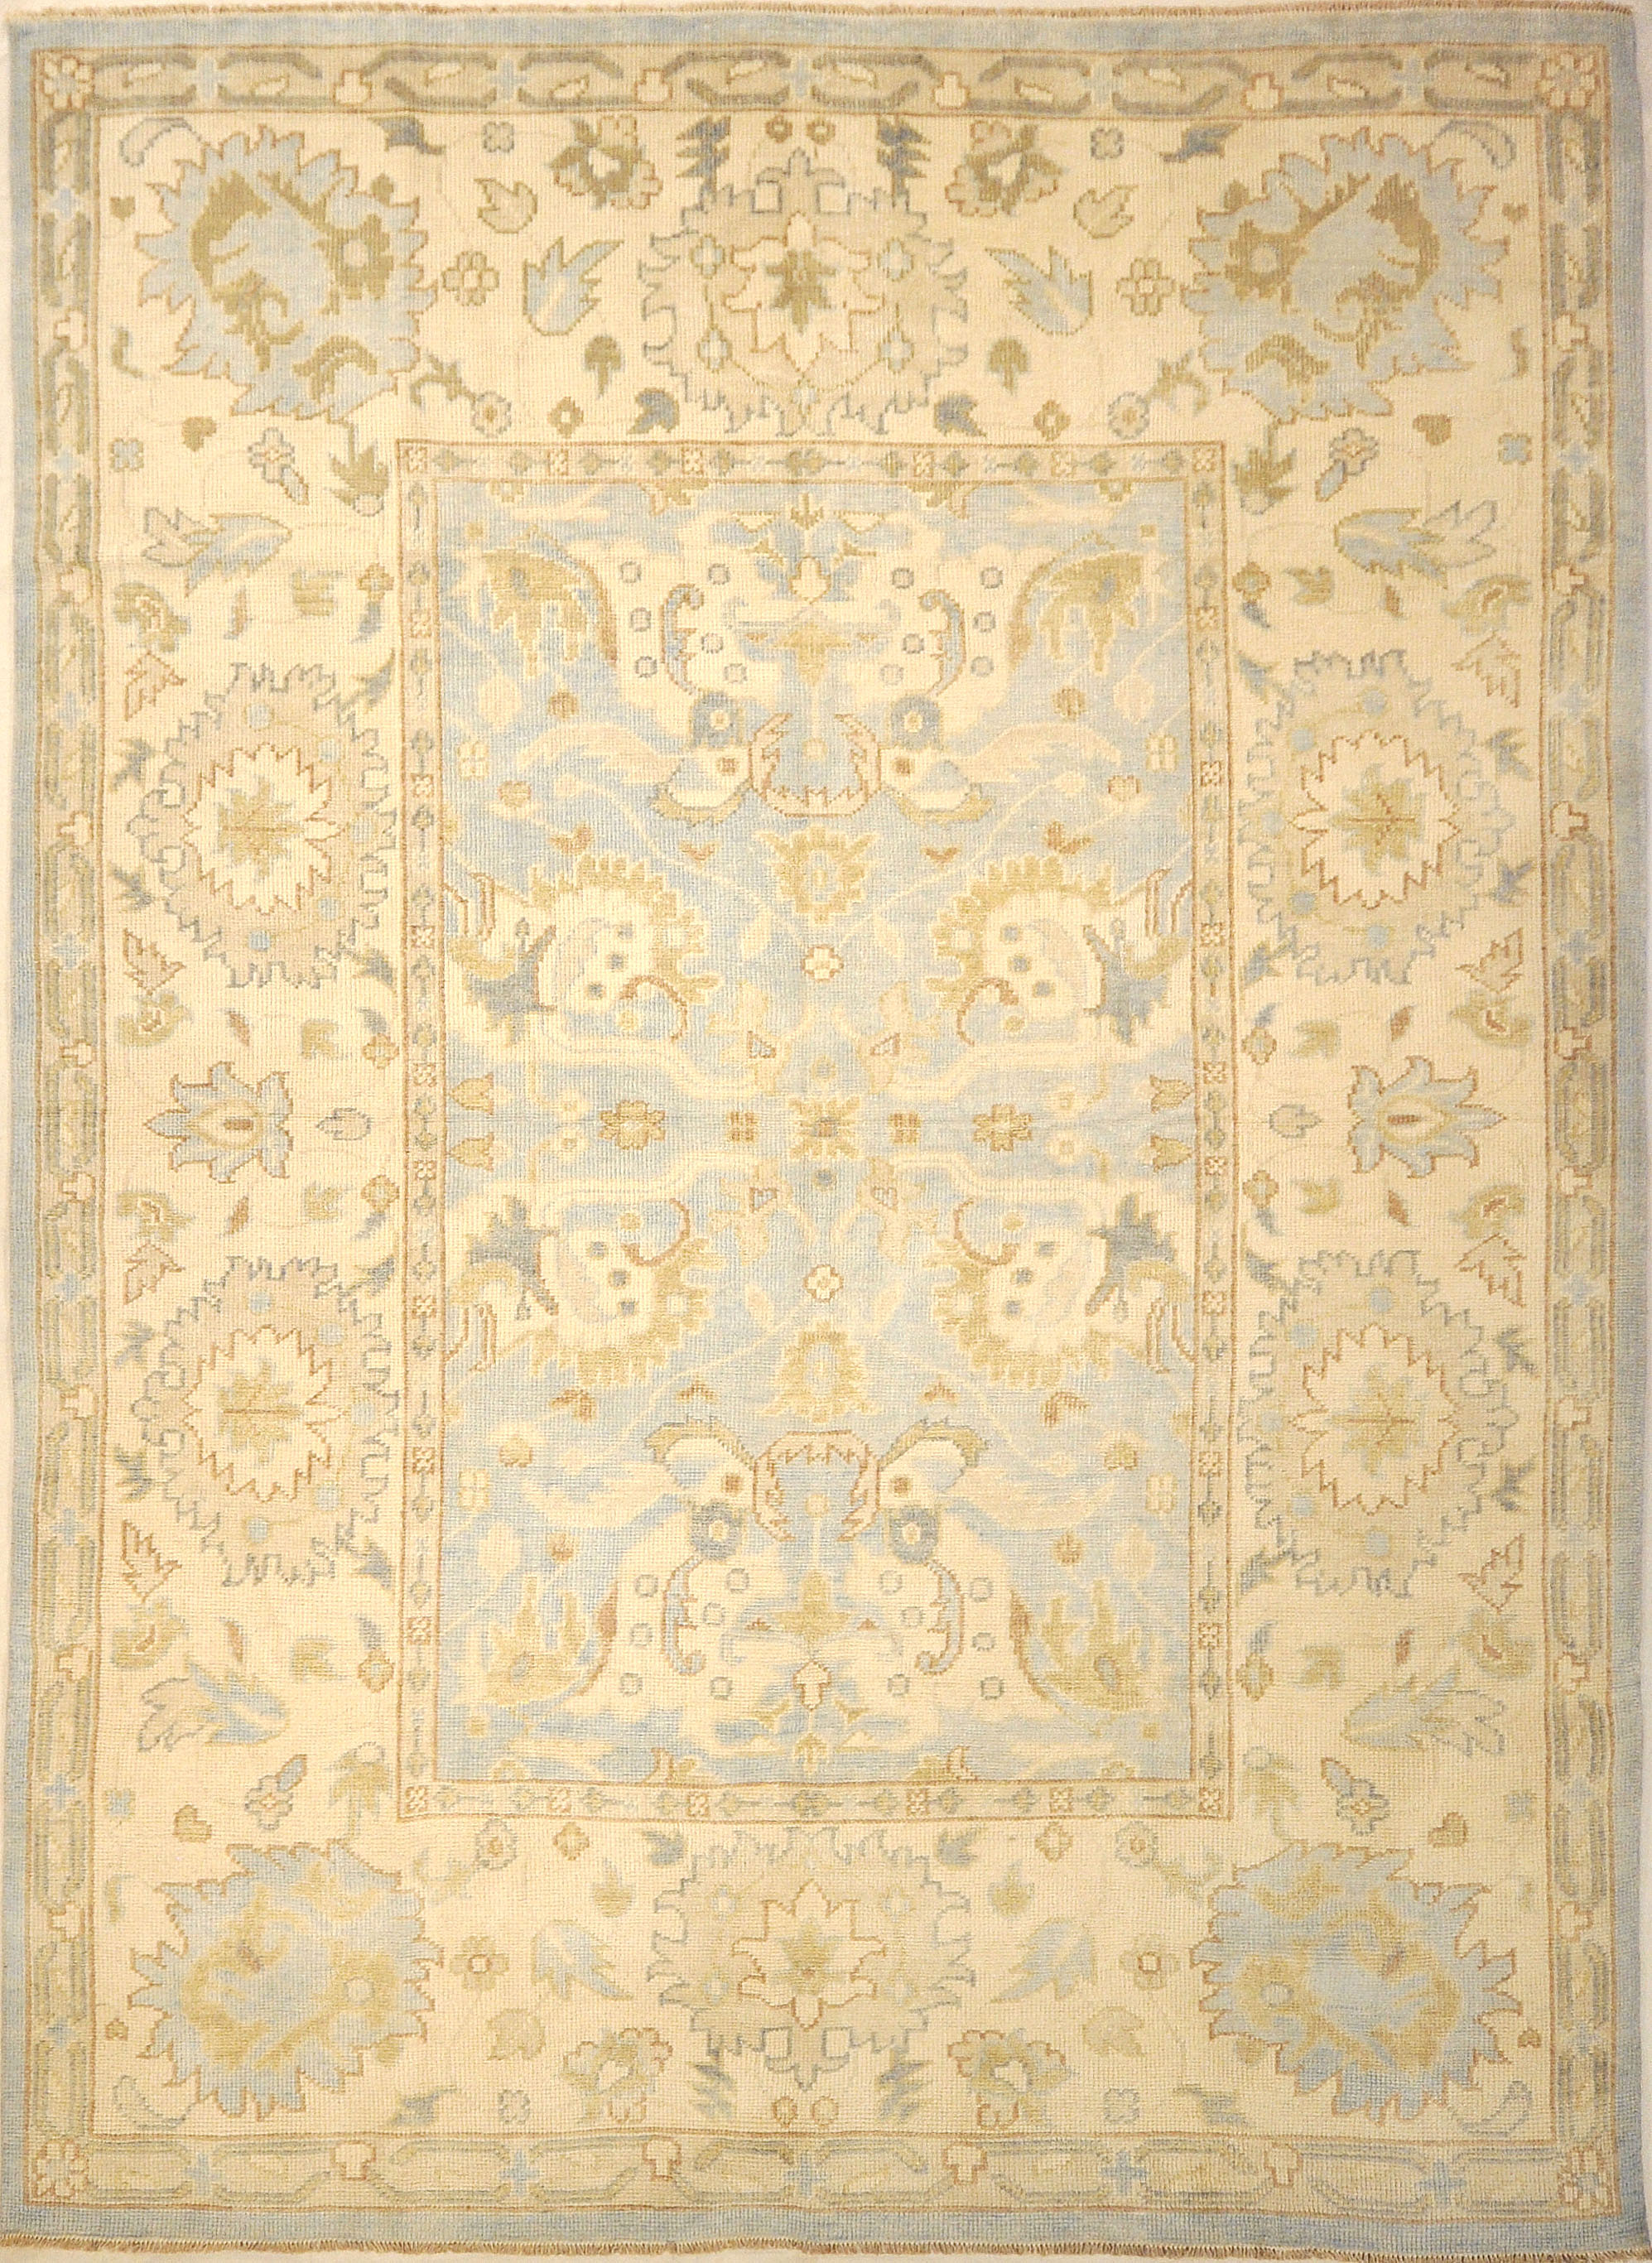 Montecito Oushak Rug 30311. A piece of genuine authentic woven art woven by Ziegler and Company and sold by Santa Barbara Design Center, Rugs and More.